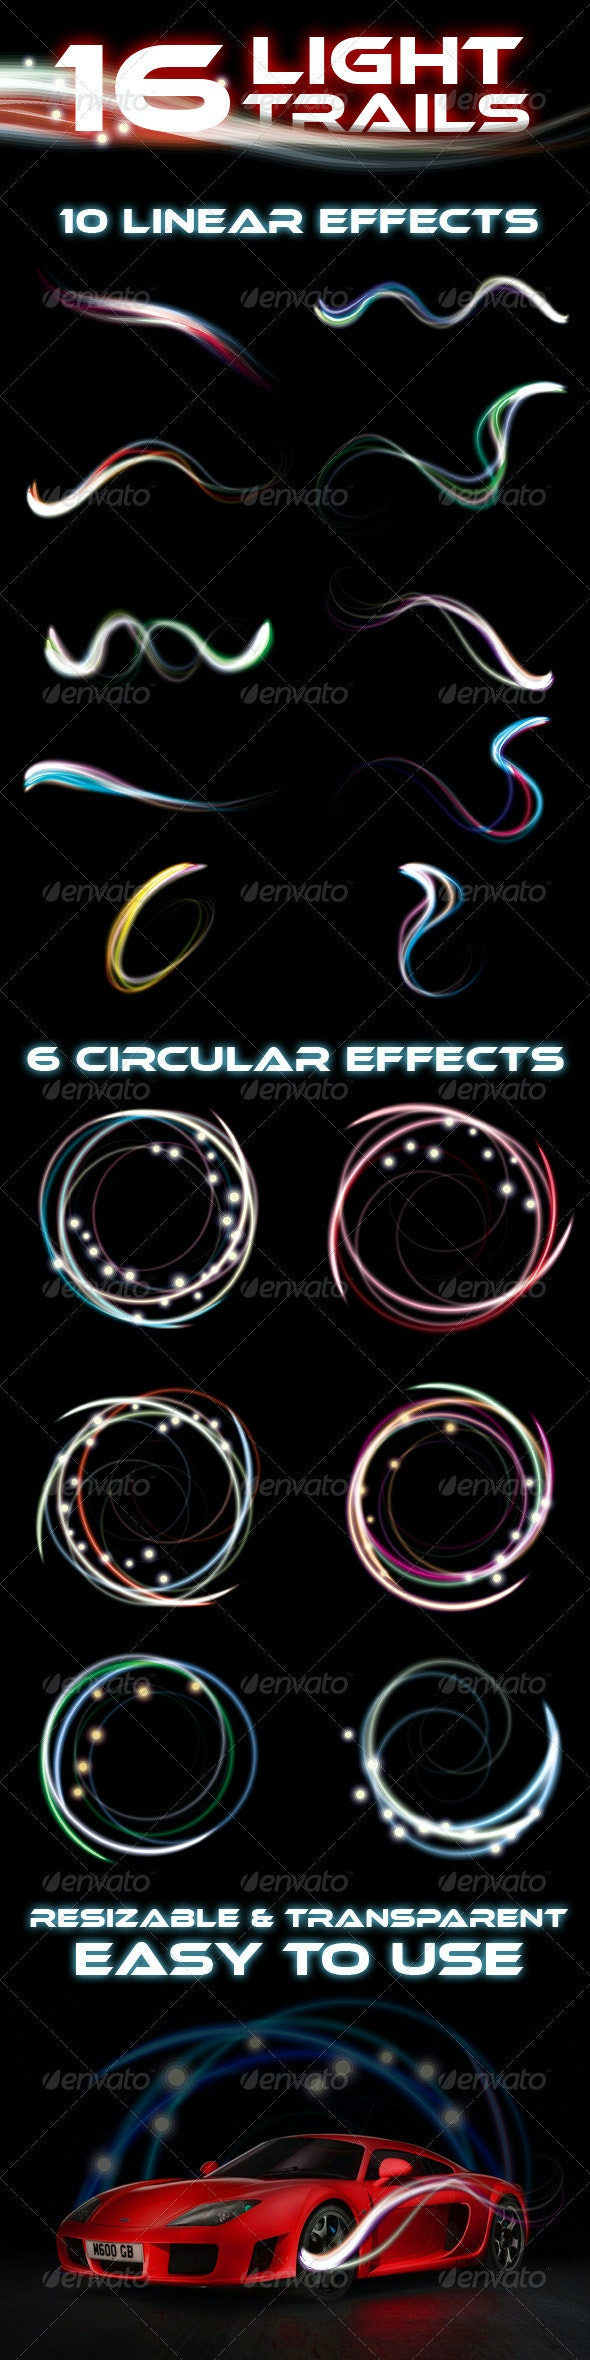 16 Premium Light Trail Effects - Decorative Graphics